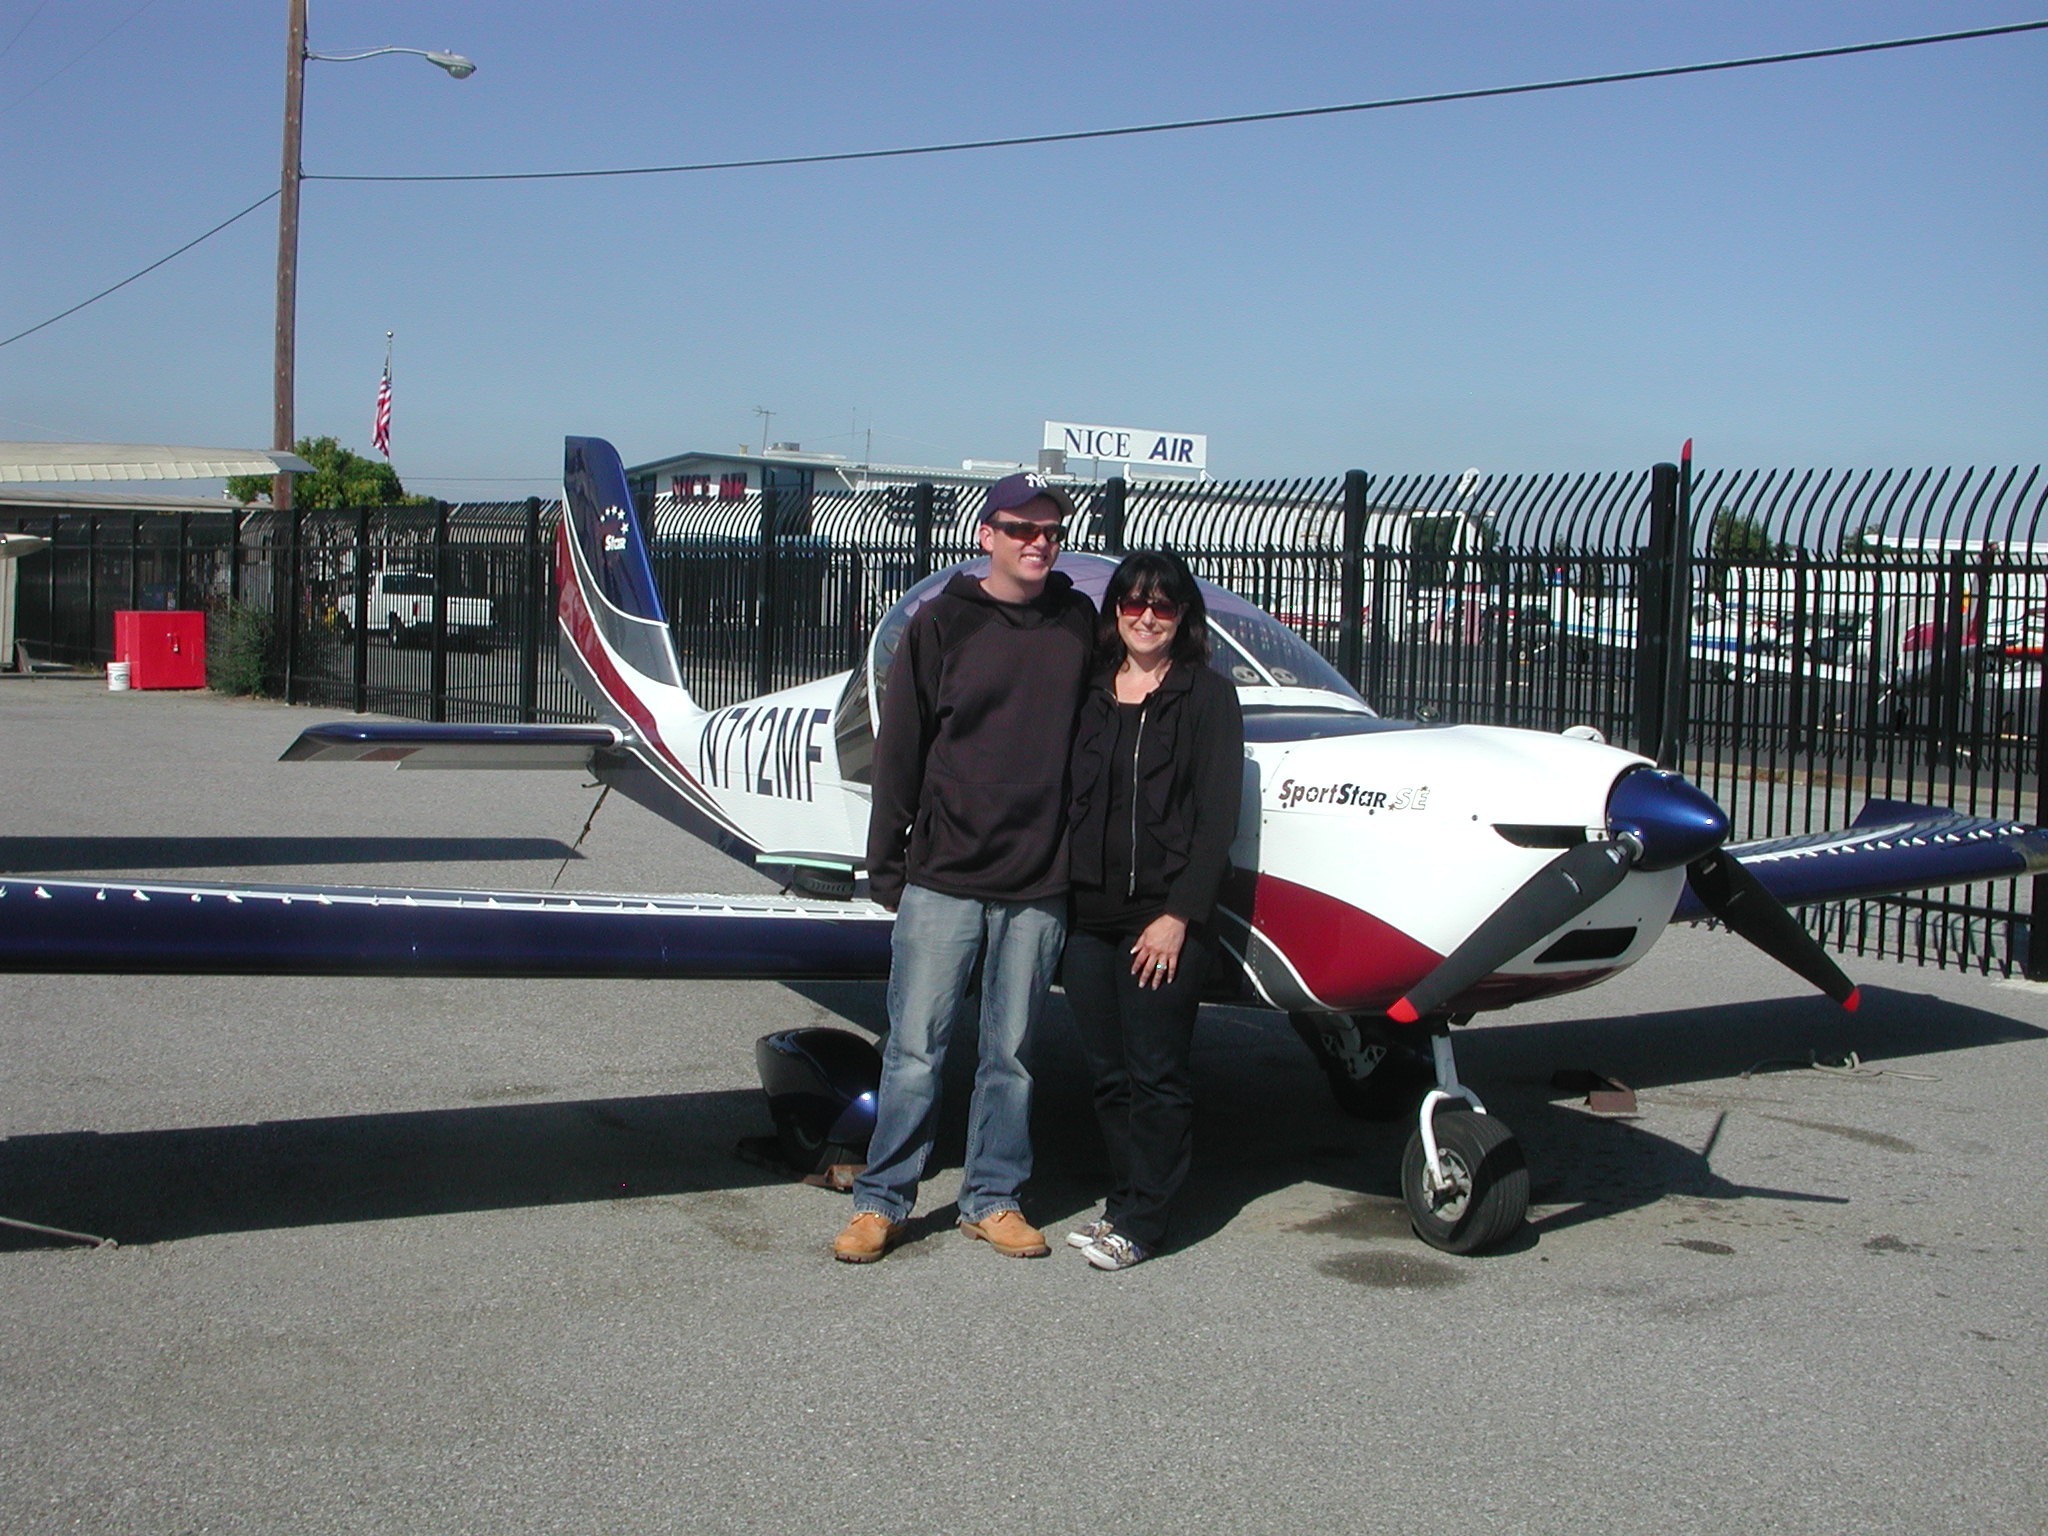 Anny Aubin soloes Evektor SportStar out of AeroDynamic Aviation located at Reid Hillview Airport in San Jose, CA.